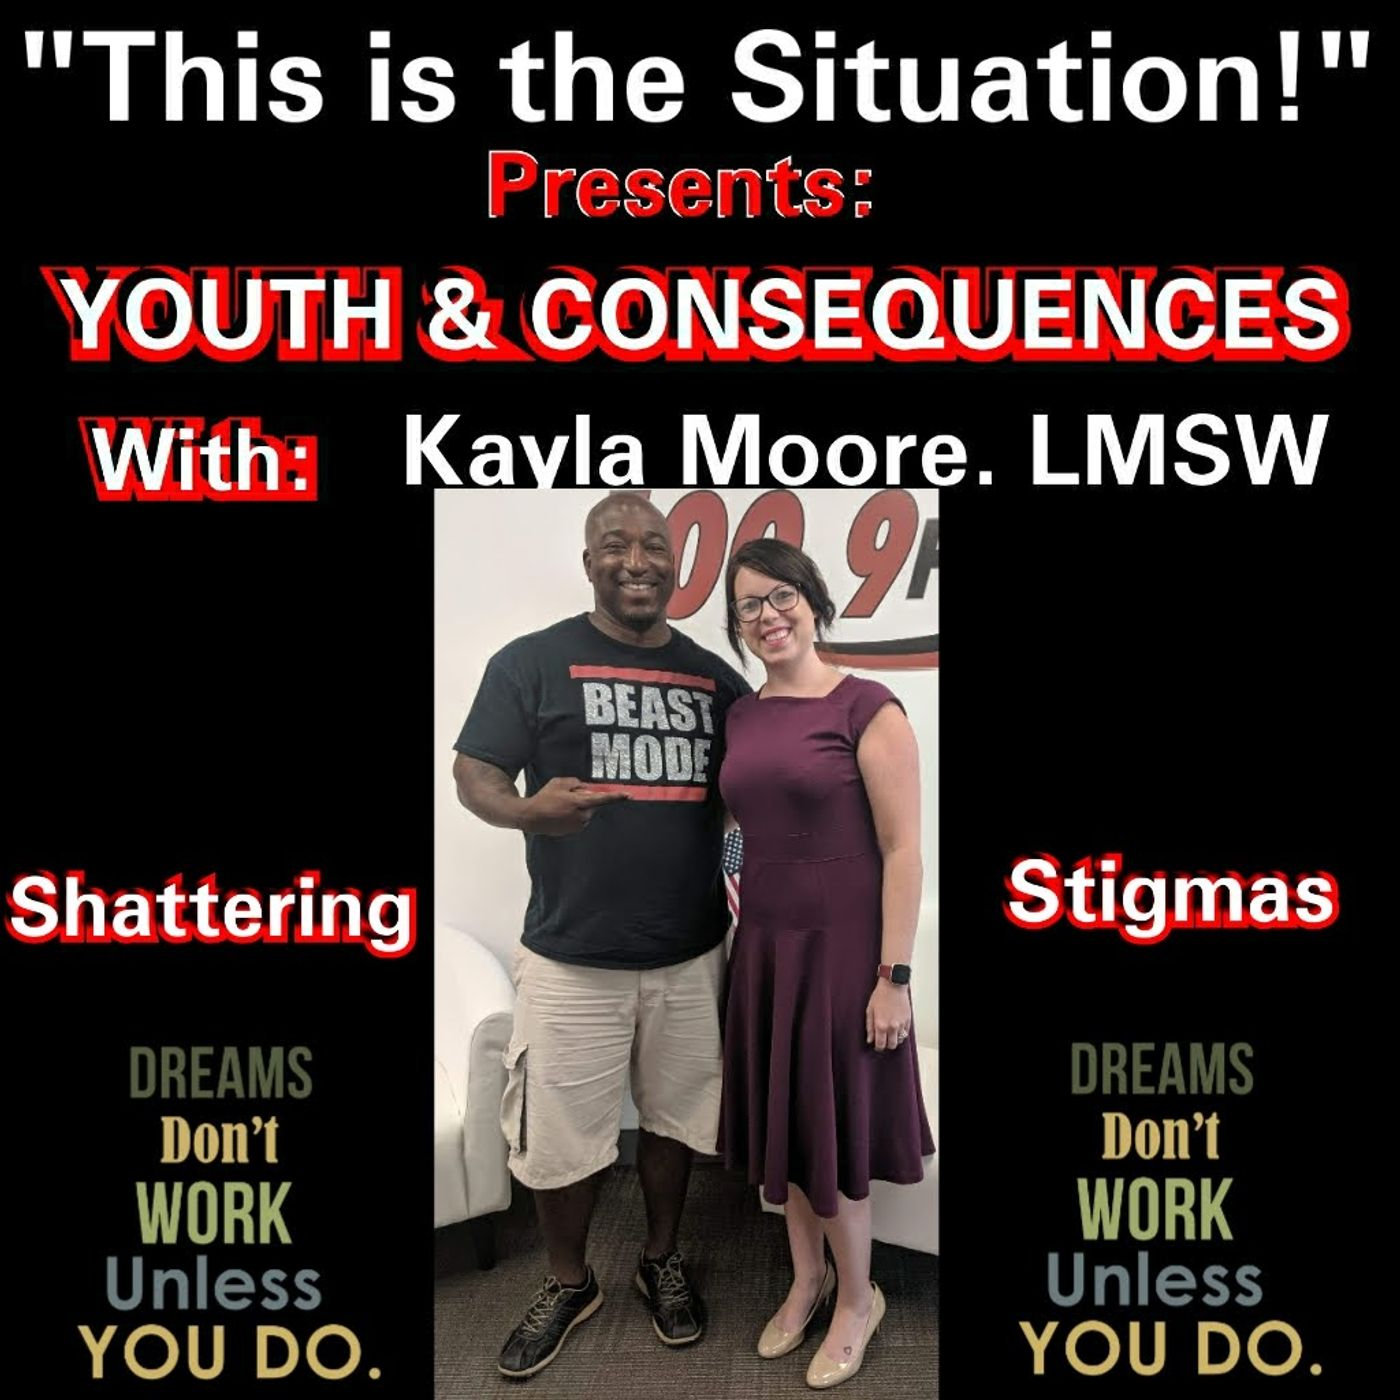 Youth & Consequences